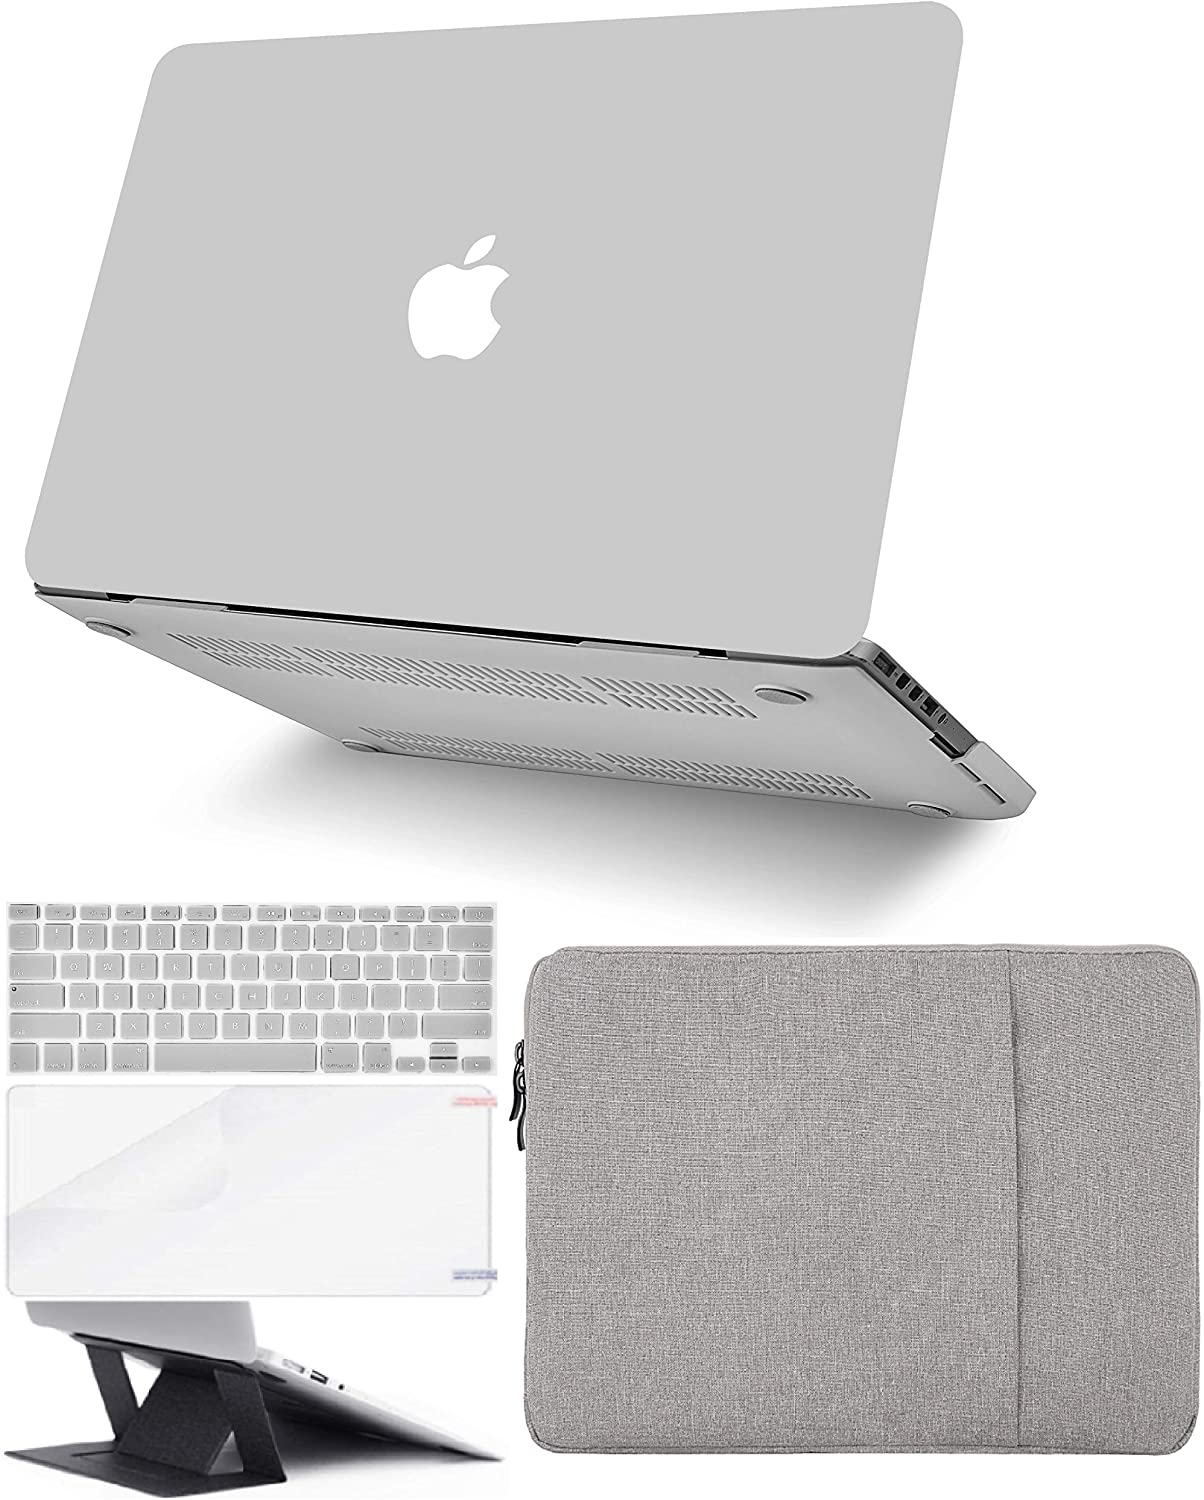 KECC Laptop Case for MacBook Air 13 Retina (2020, Touch ID) w/Keyboard Cover + Sleeve + Screen Protector + Laptop Stand (5 in 1 Bundle) Plastic Hard Shell Case A2179 (Stone Grey)